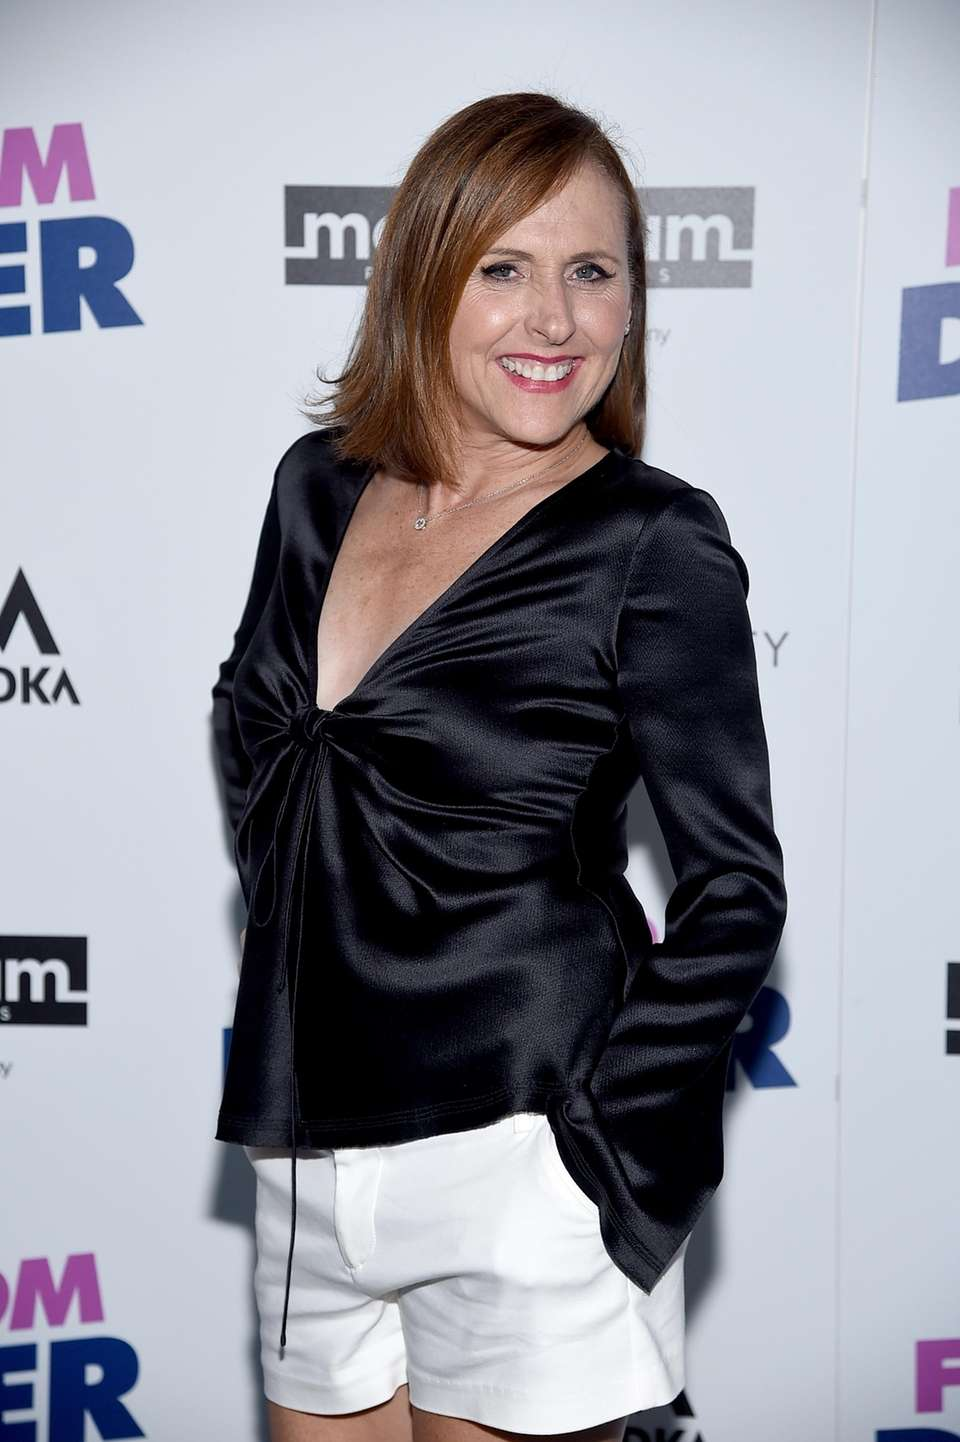 Molly Shannon attends a screening of the film